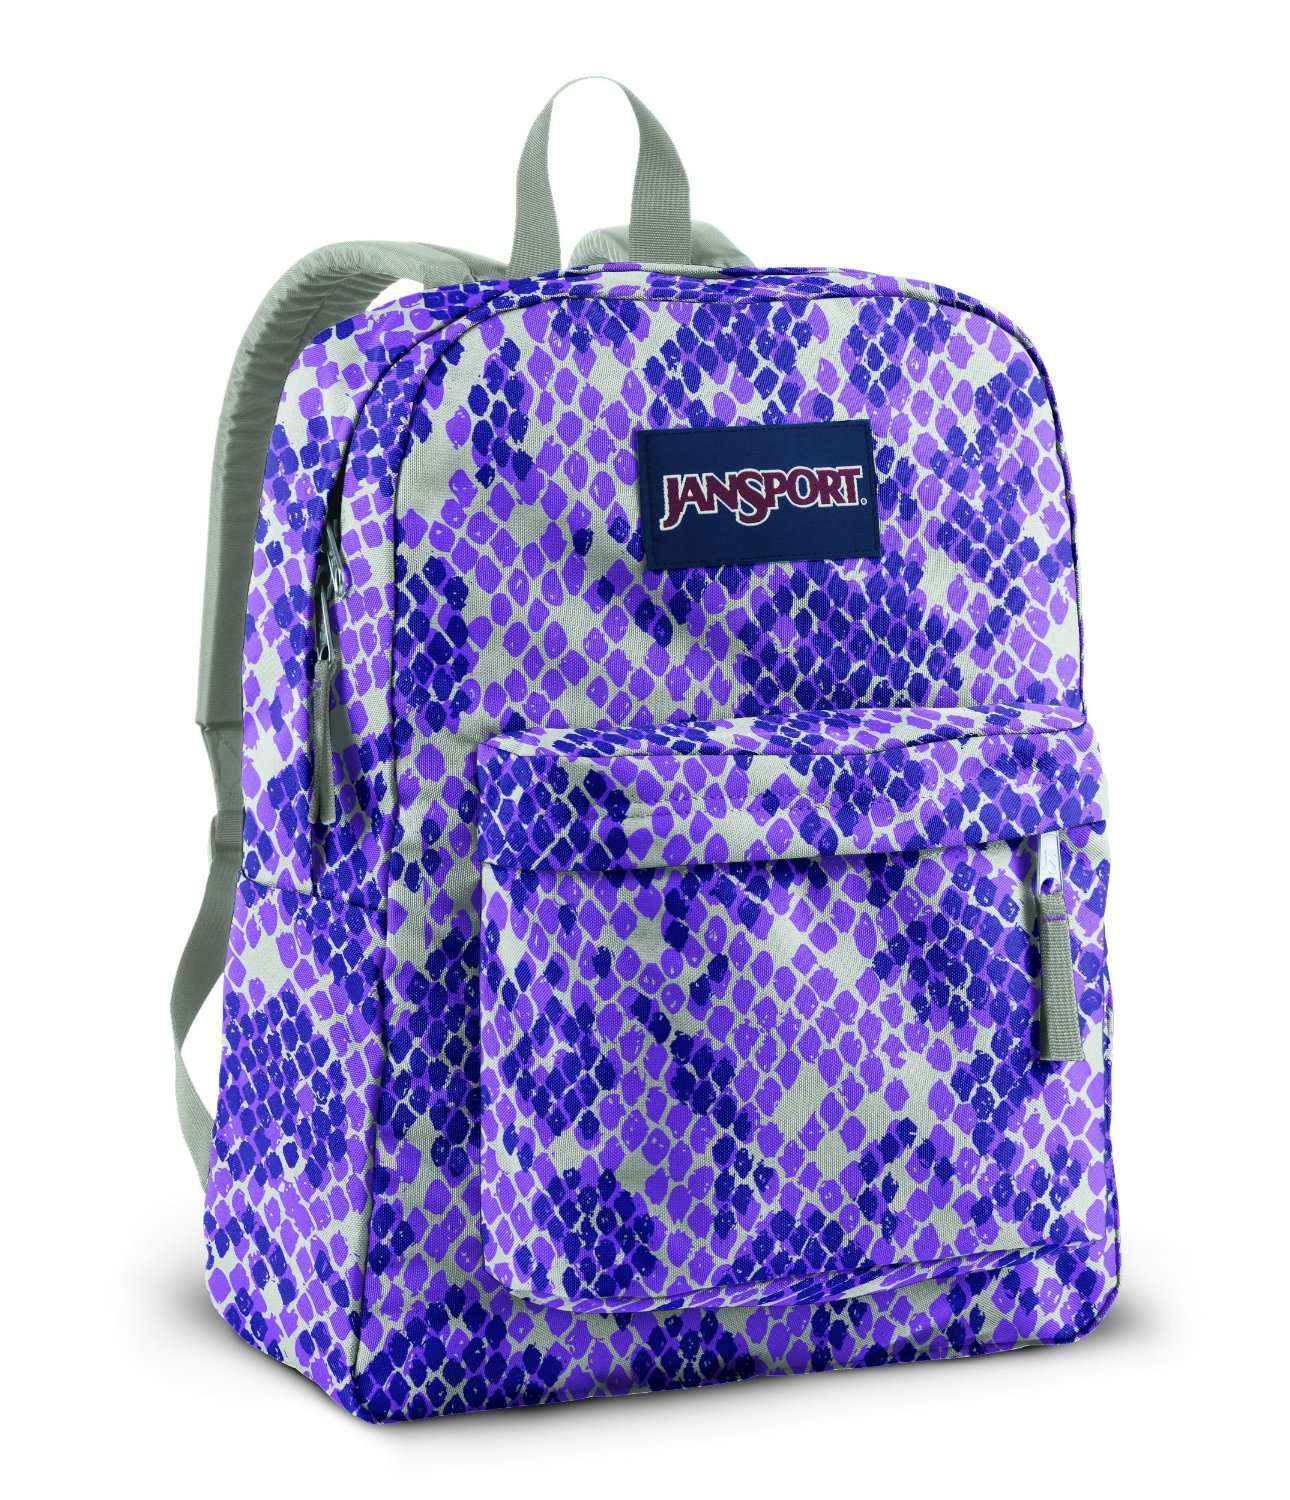 Jansport School Backpacks For Girls ih85WpJO